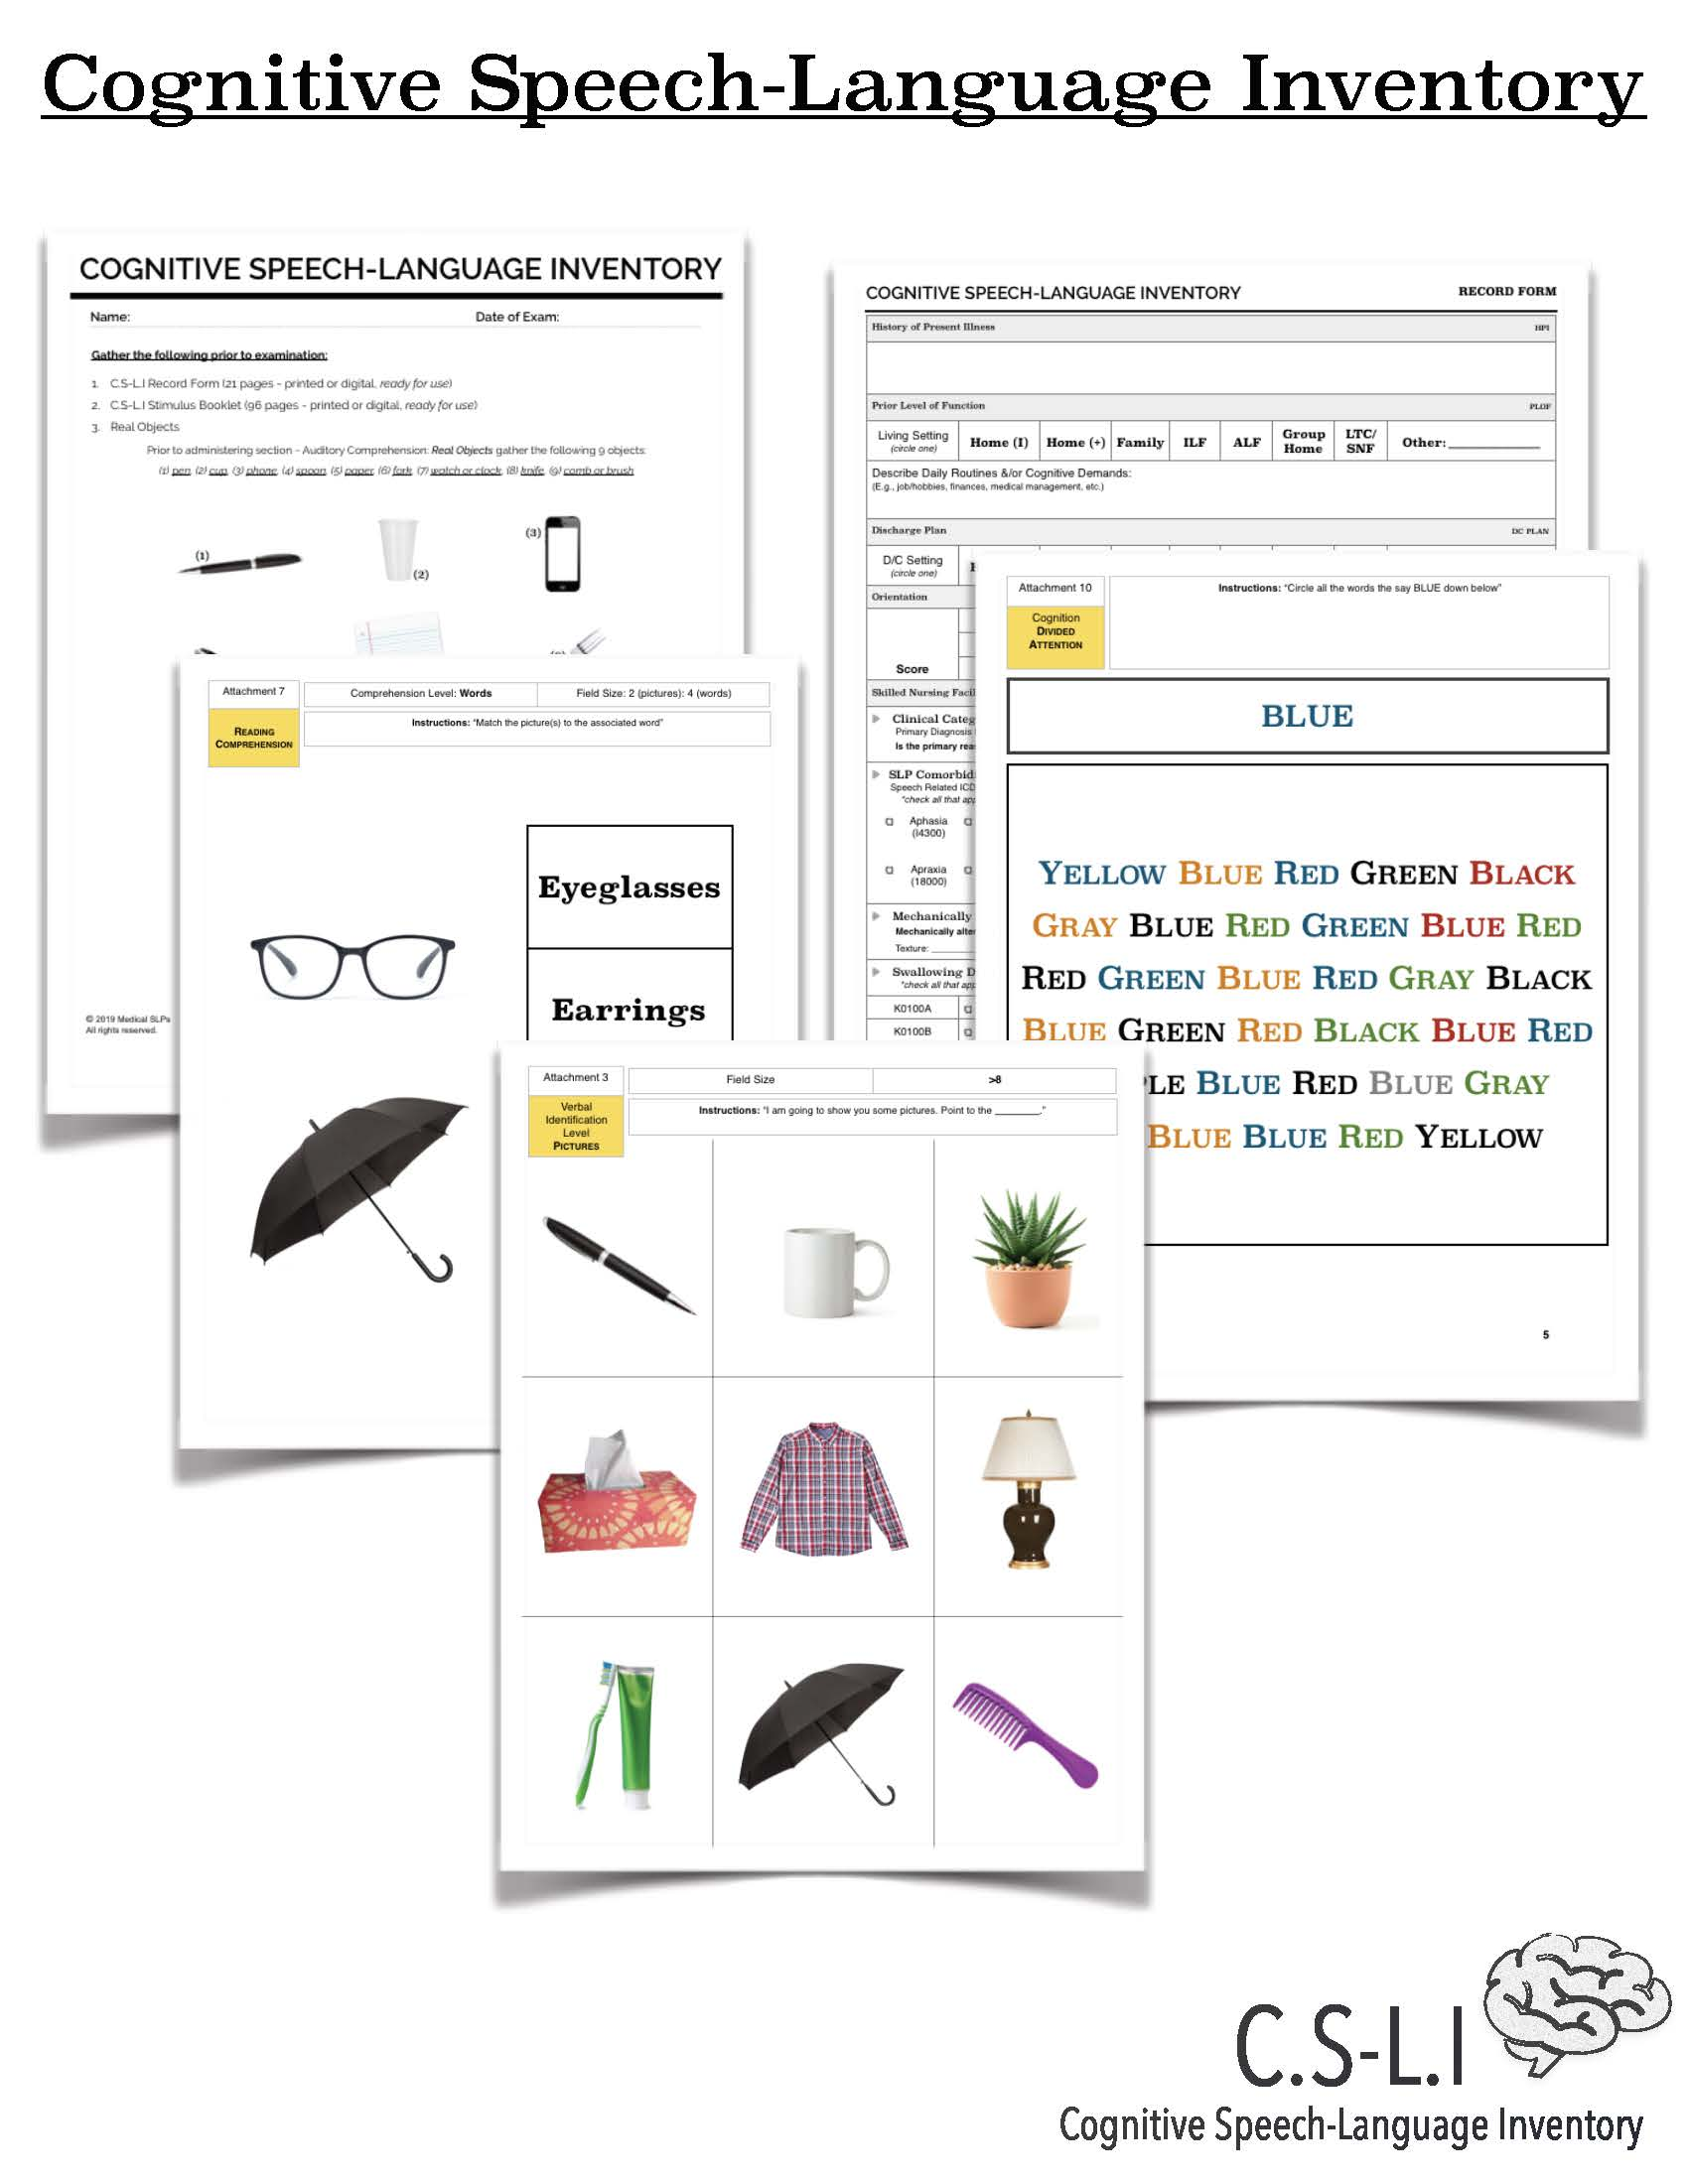 Cognitive Speech Language Inventory